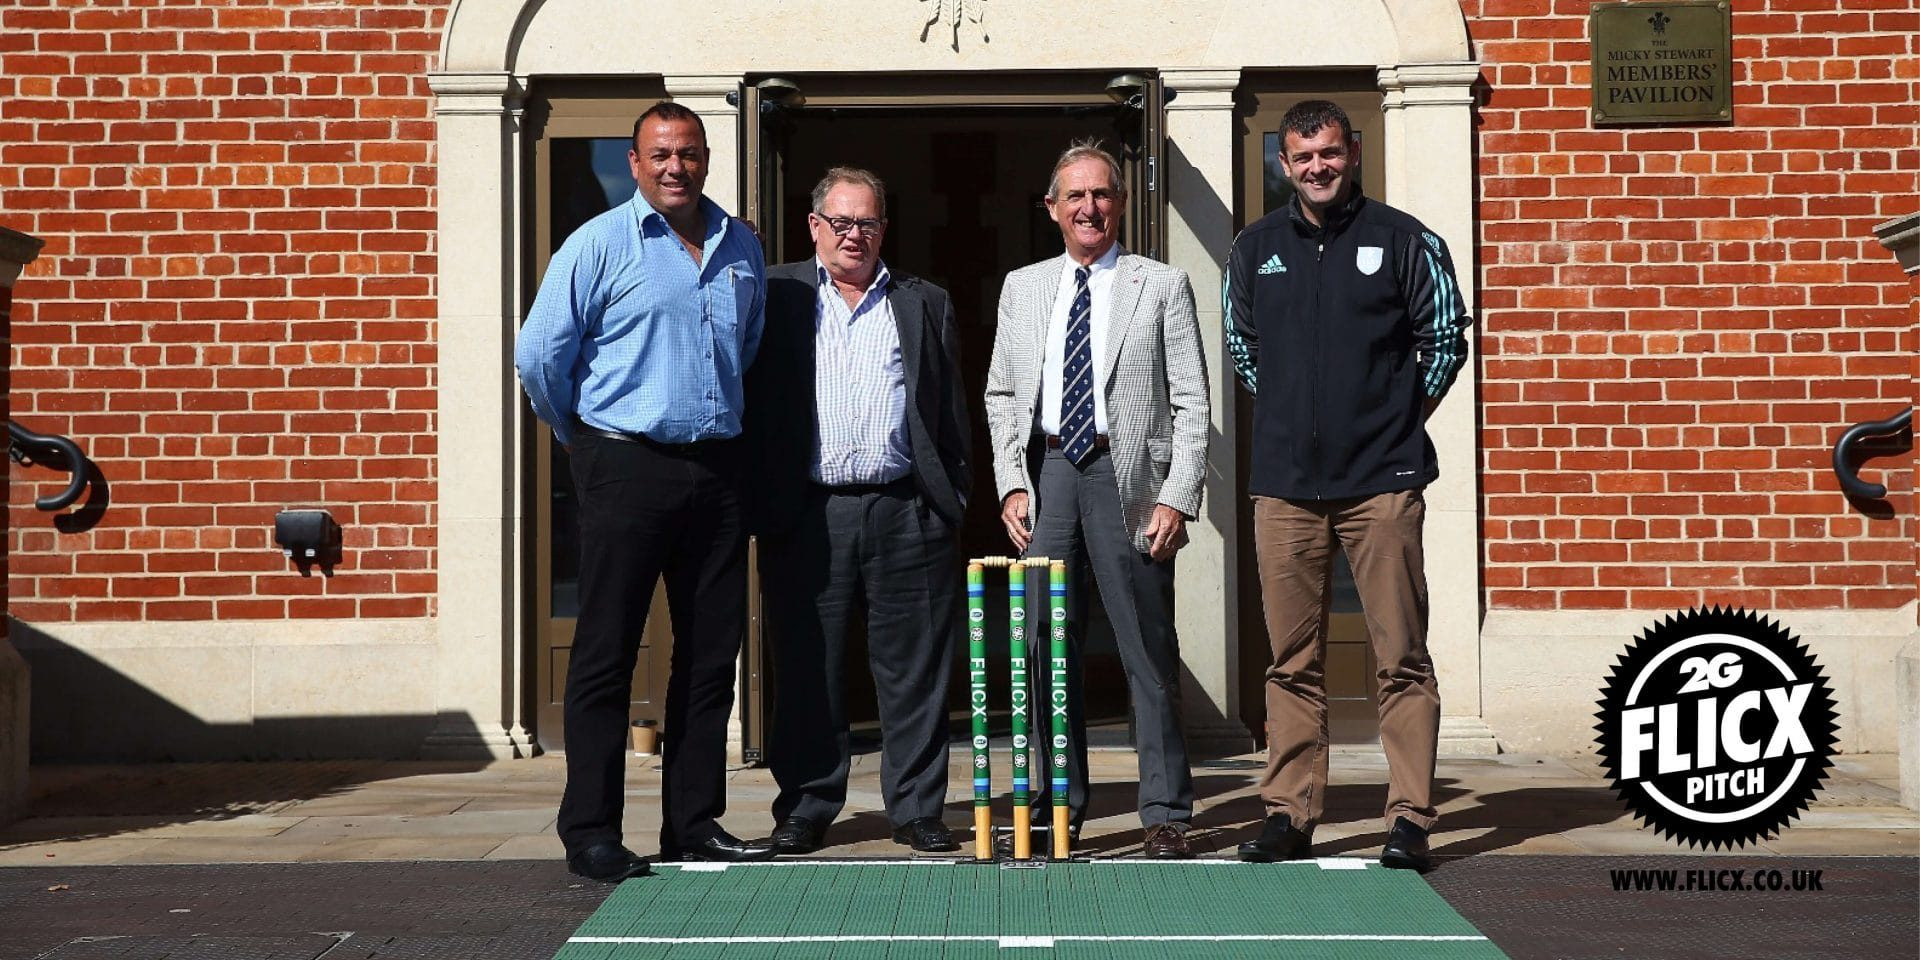 Surrey Cricket Foundation and Flicx